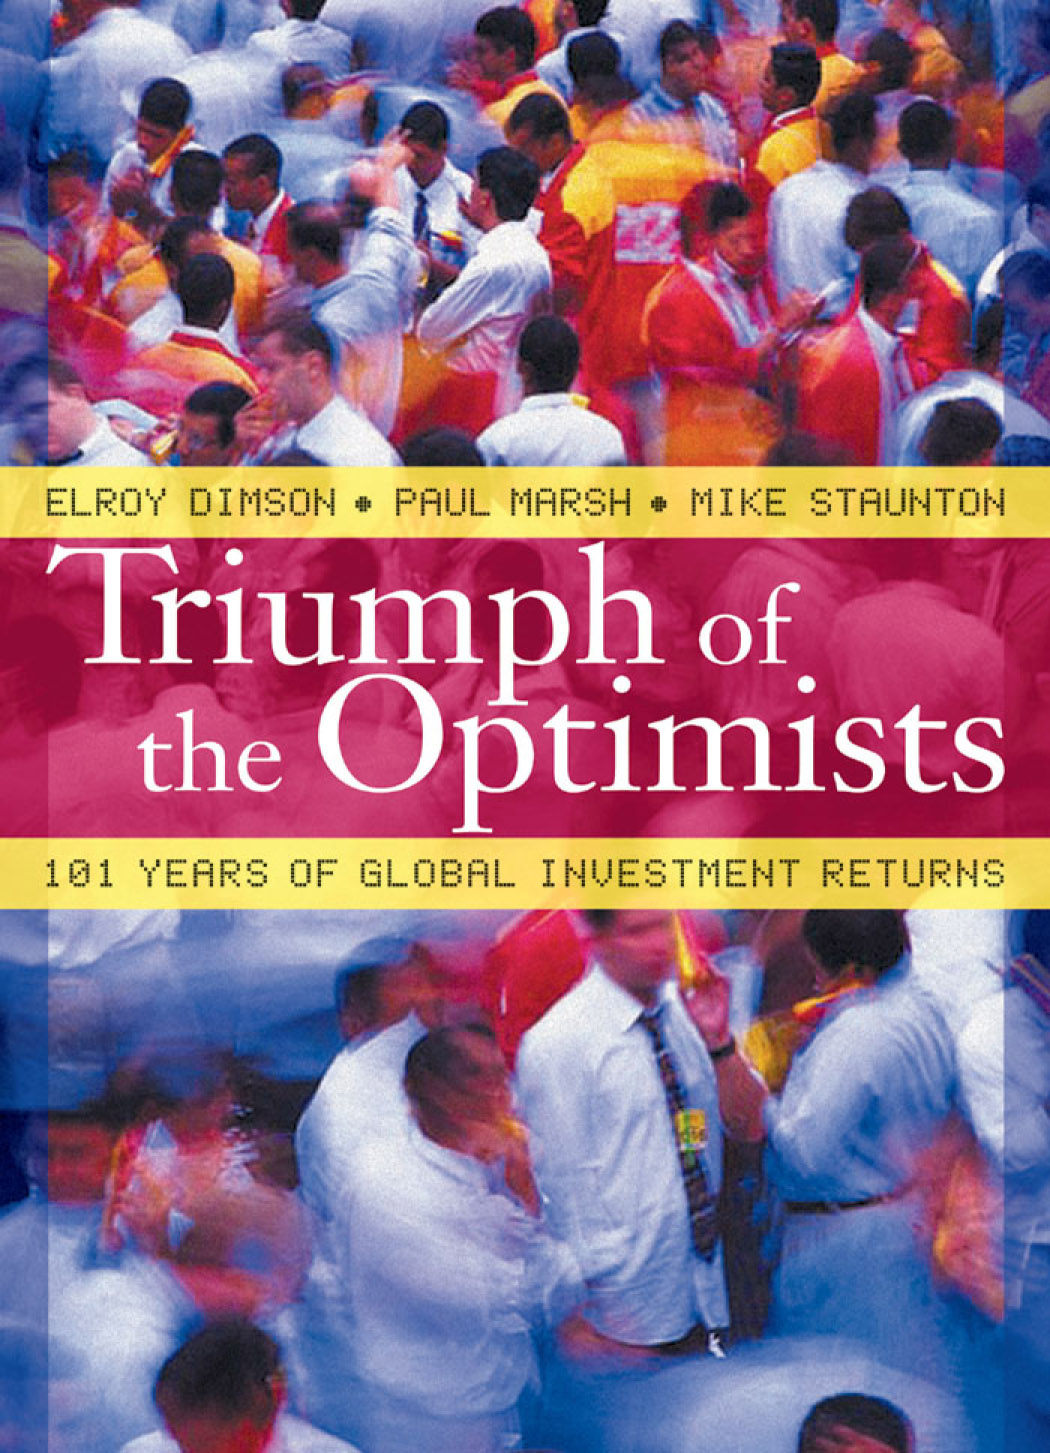 Download Ebook Triumph of the Optimists by Elroy Dimson Pdf